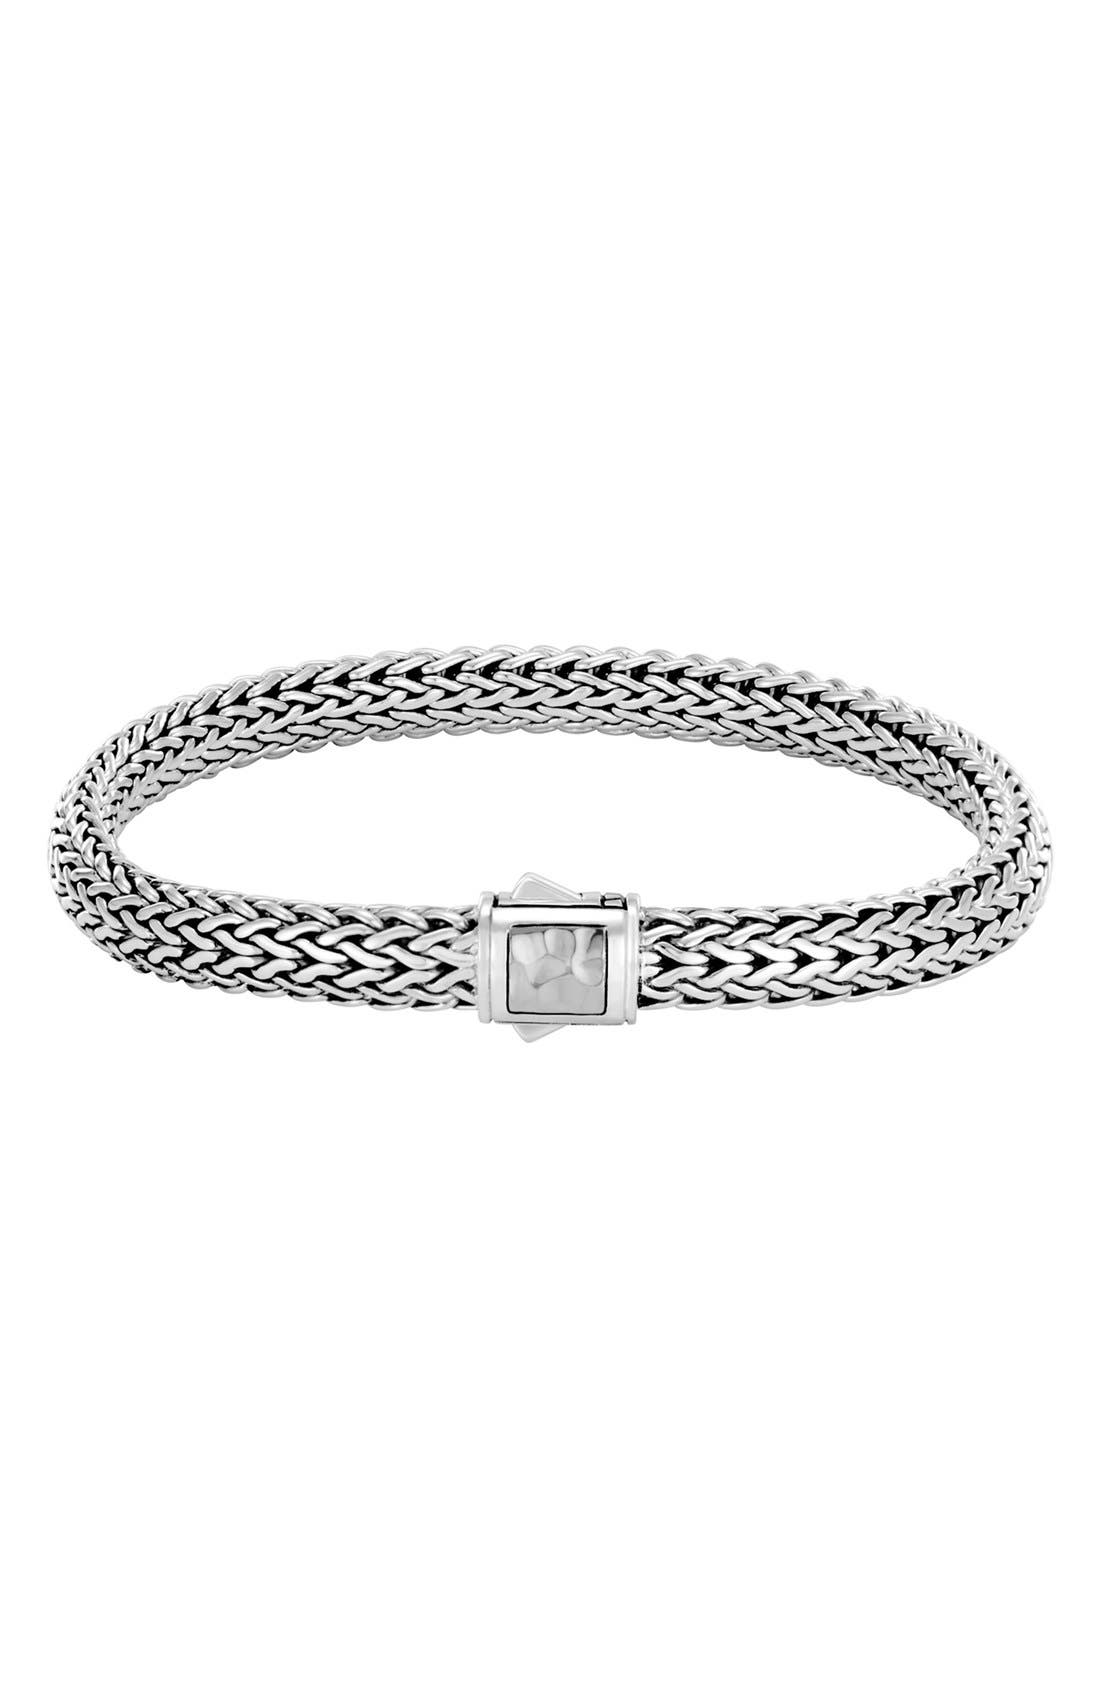 6.5mm Hammered Clasp Bracelet,                         Main,                         color, SILVER